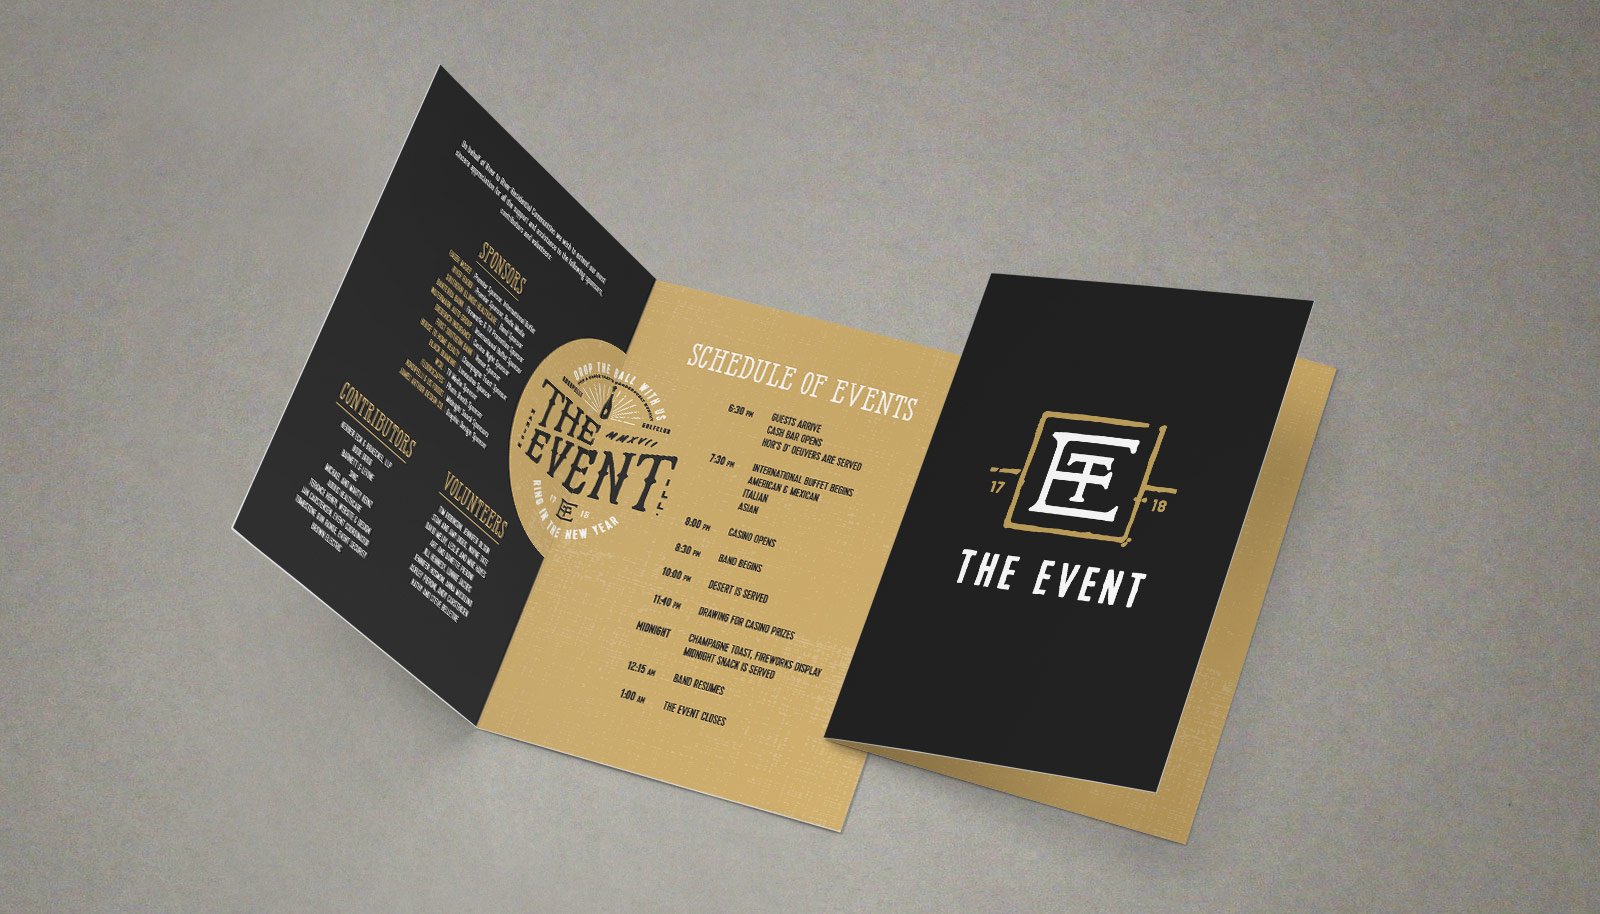 The Event New Years Eve Celebration Program Design